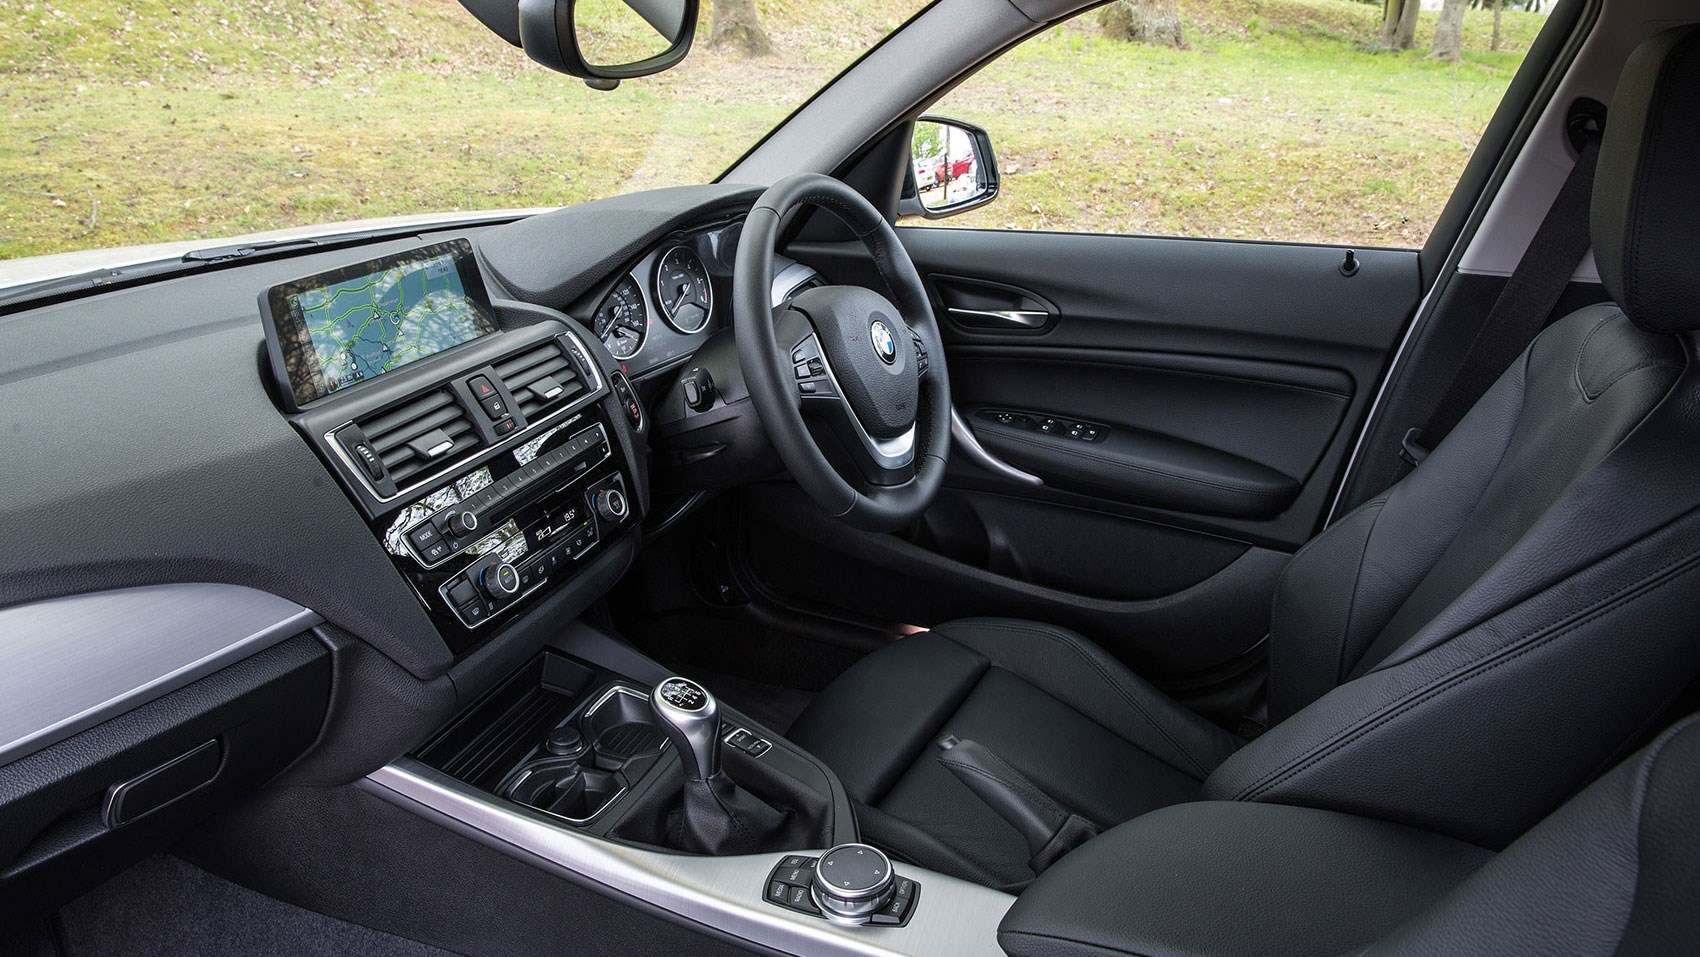 Bmw 116d Efficient Dynamics Plus 2015 Review Car Magazine E90 Start Stop Wiring Diagram The 1 Series Weakest Point An Ageing Cabin